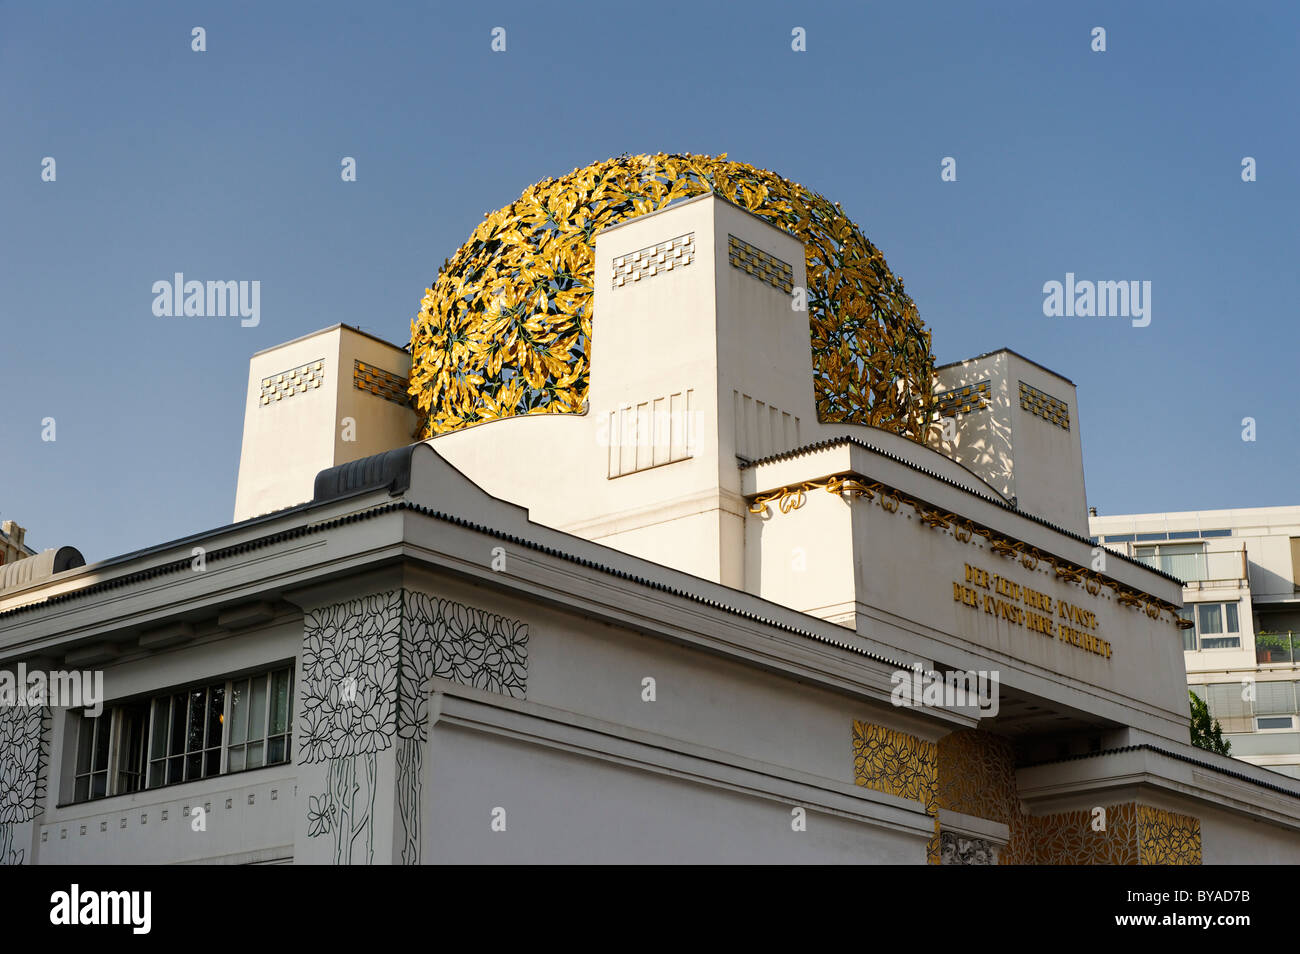 Secession, Vienna Secession exhibition building, designed by Joseph Maria Olbrich, 1st District, Vienna, Austria, - Stock Image